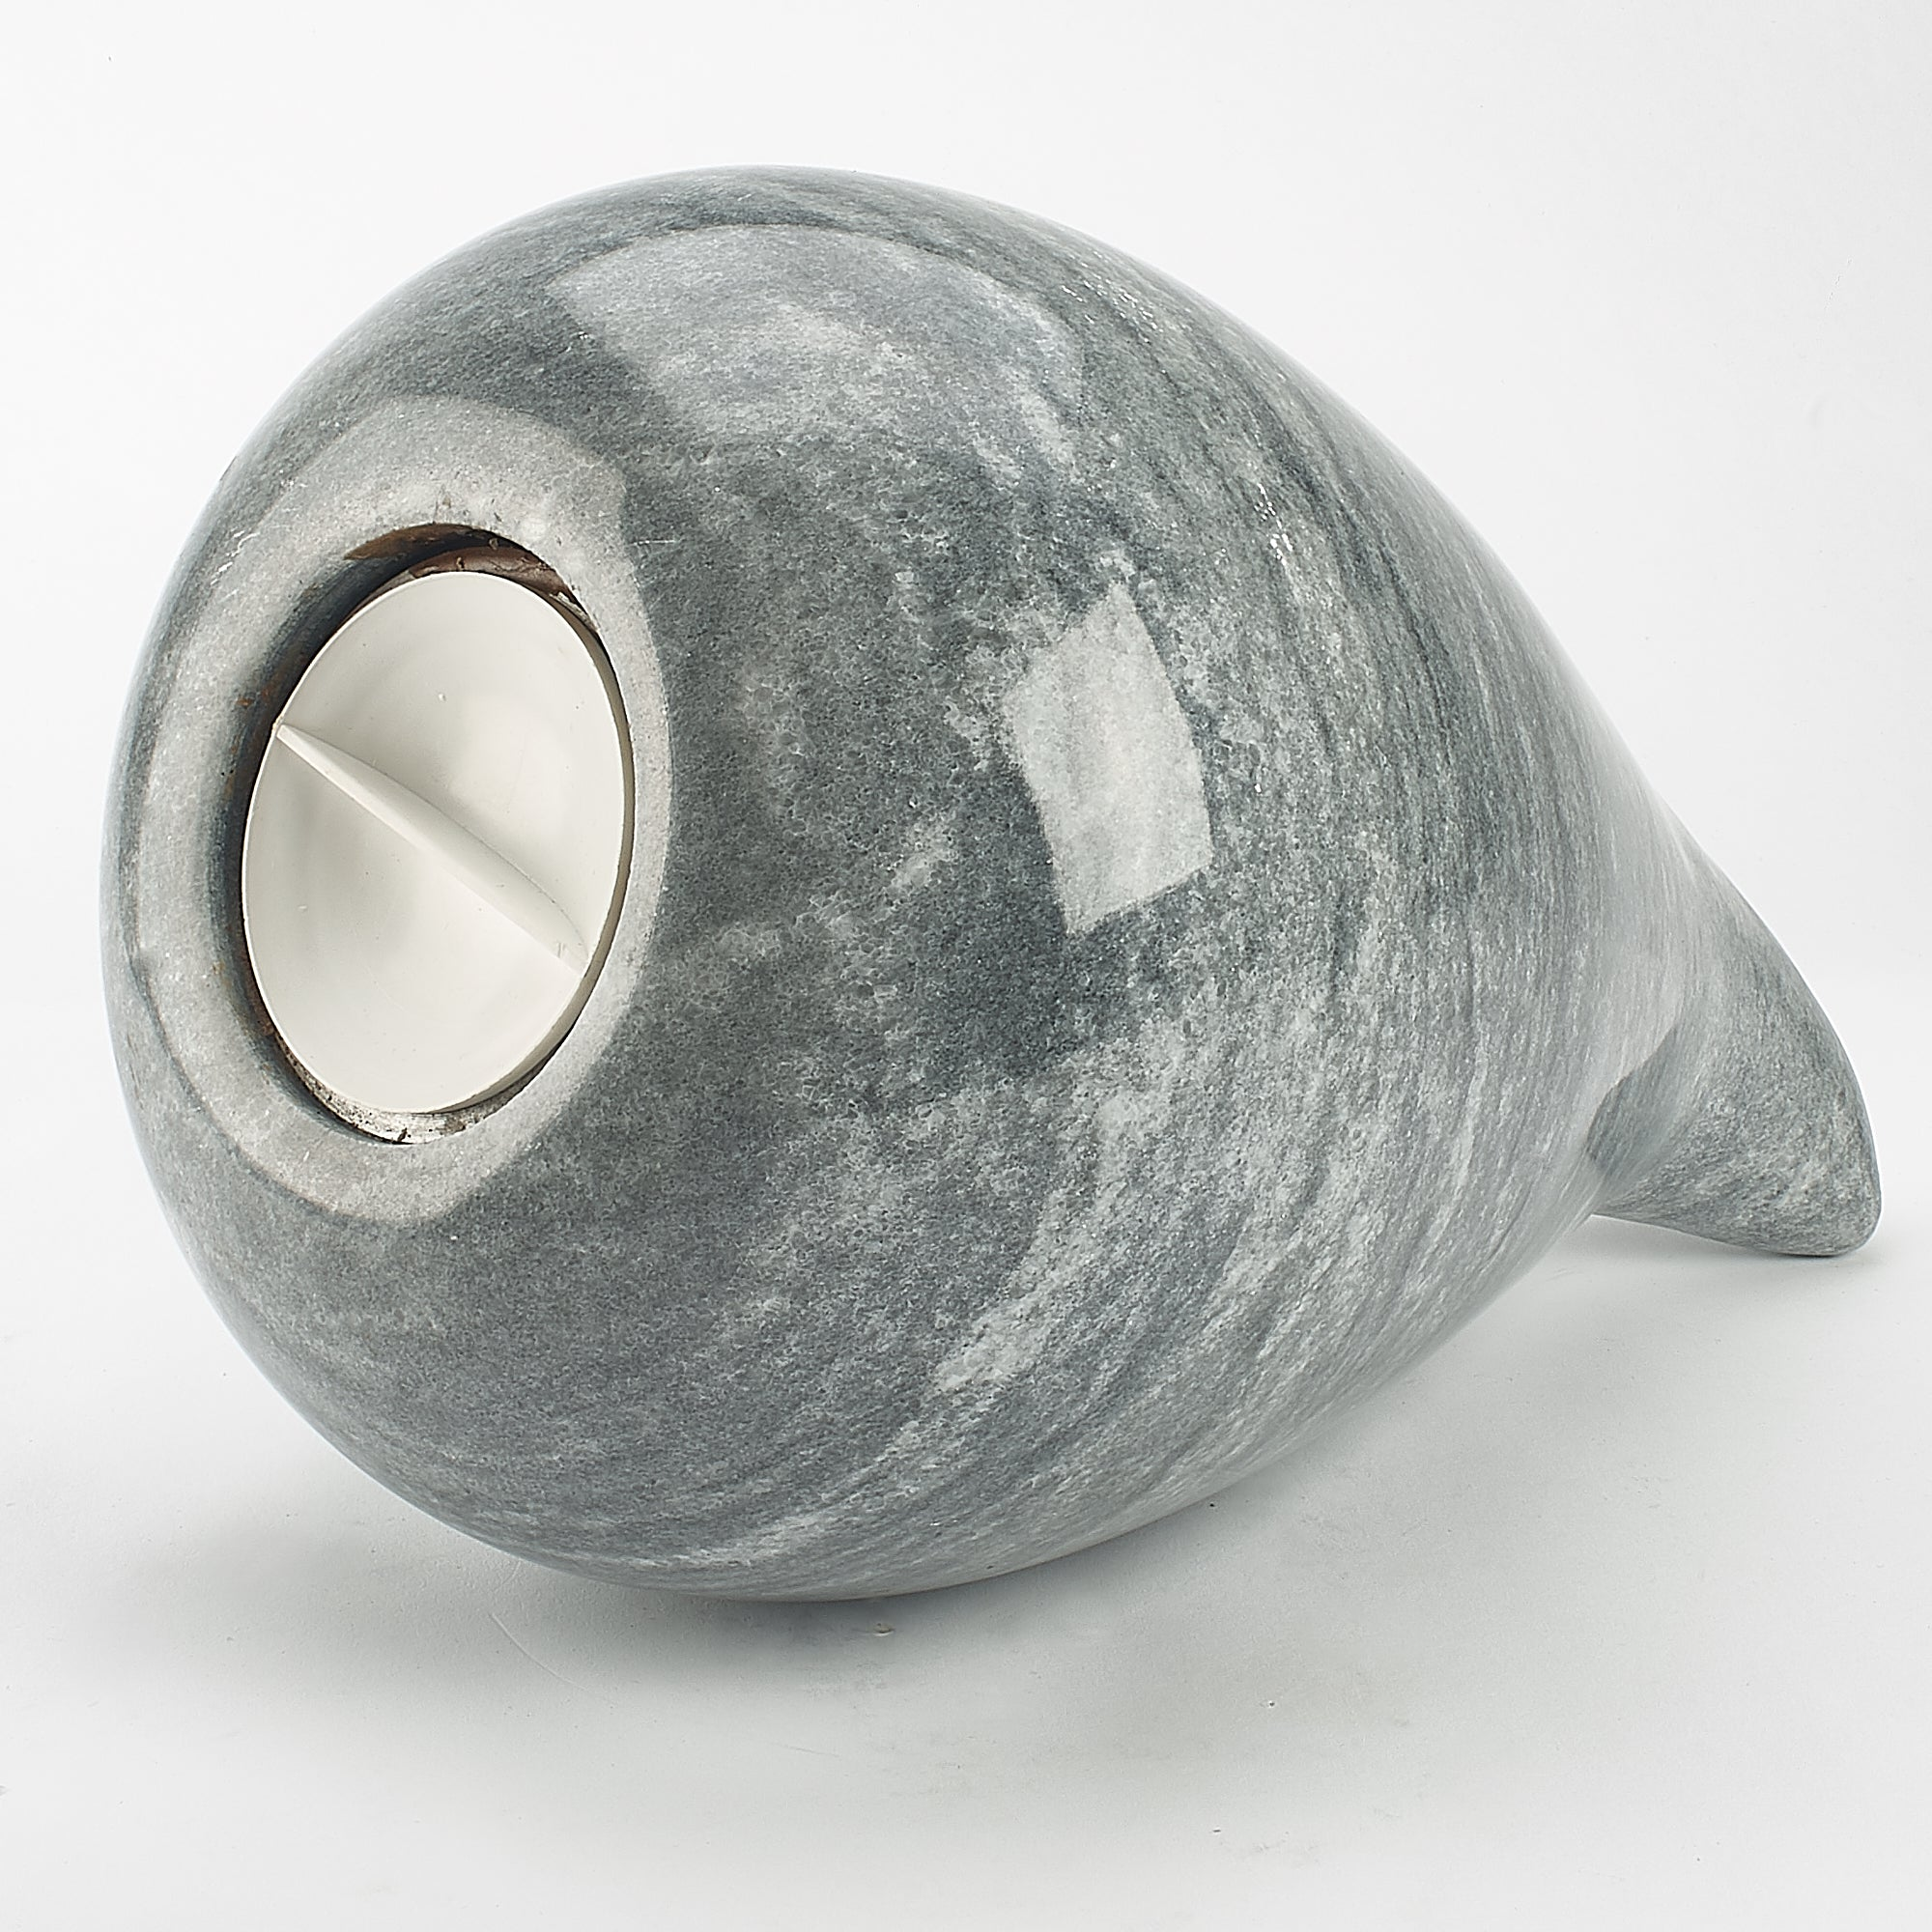 Cremation Urn - Large Luxury Grey Marble Teardrop